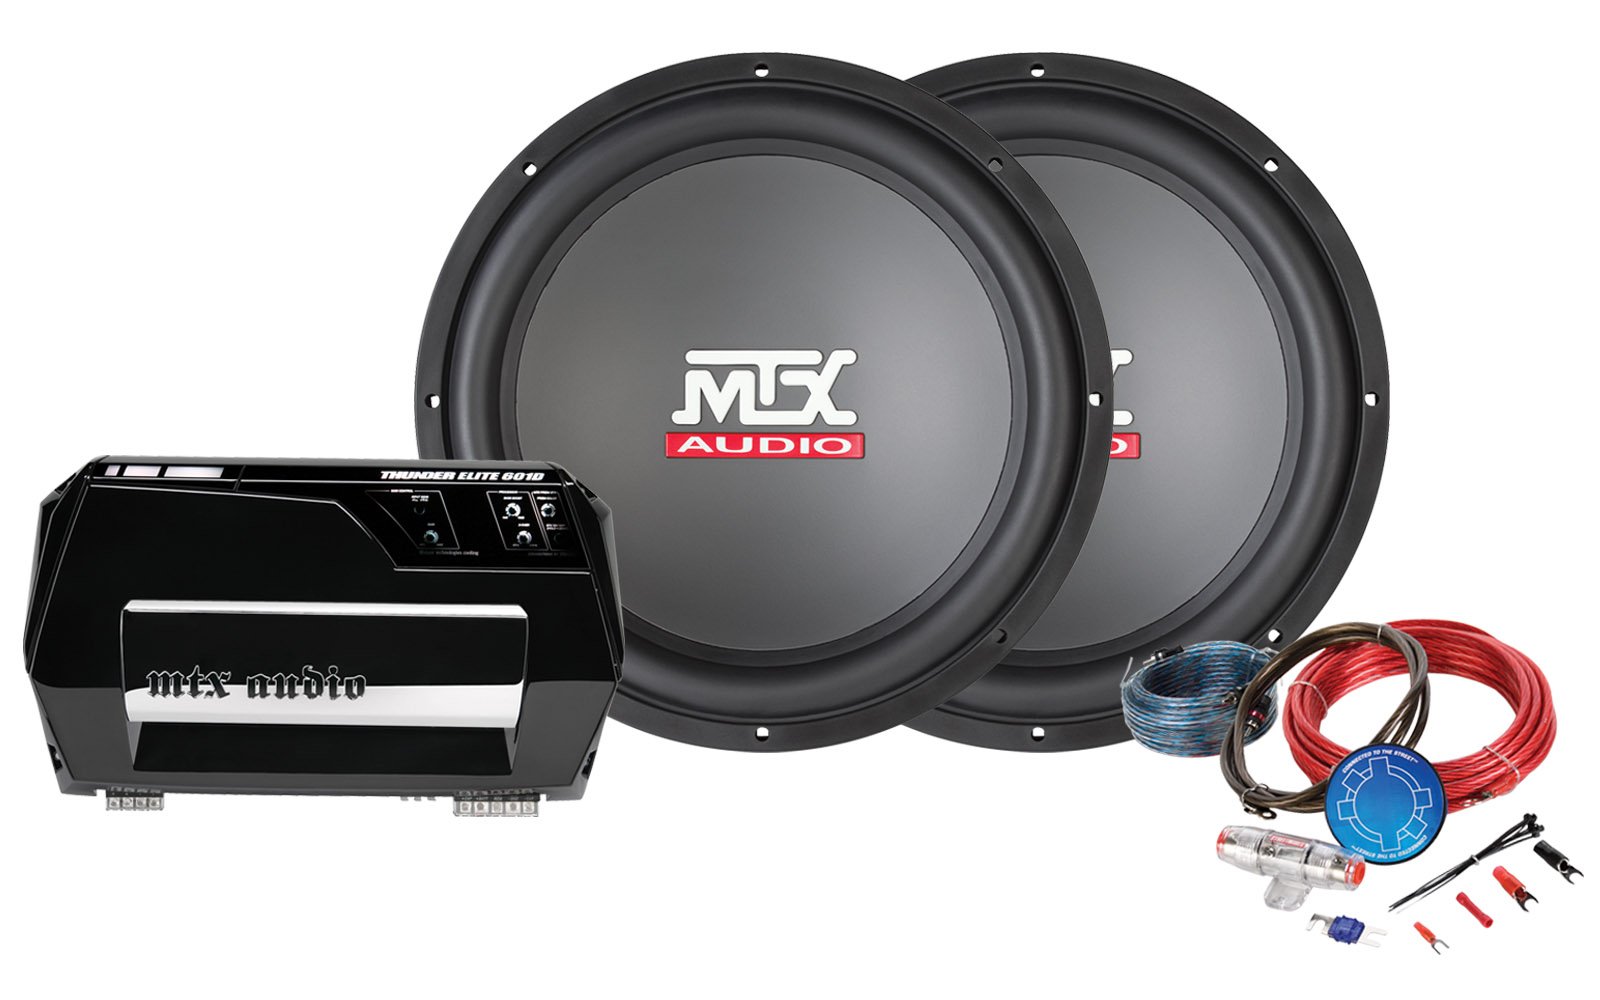 Bass Package Thunder 600w Amplifier 15 Subwoofer Mtx Audio Dual Wiring Kit